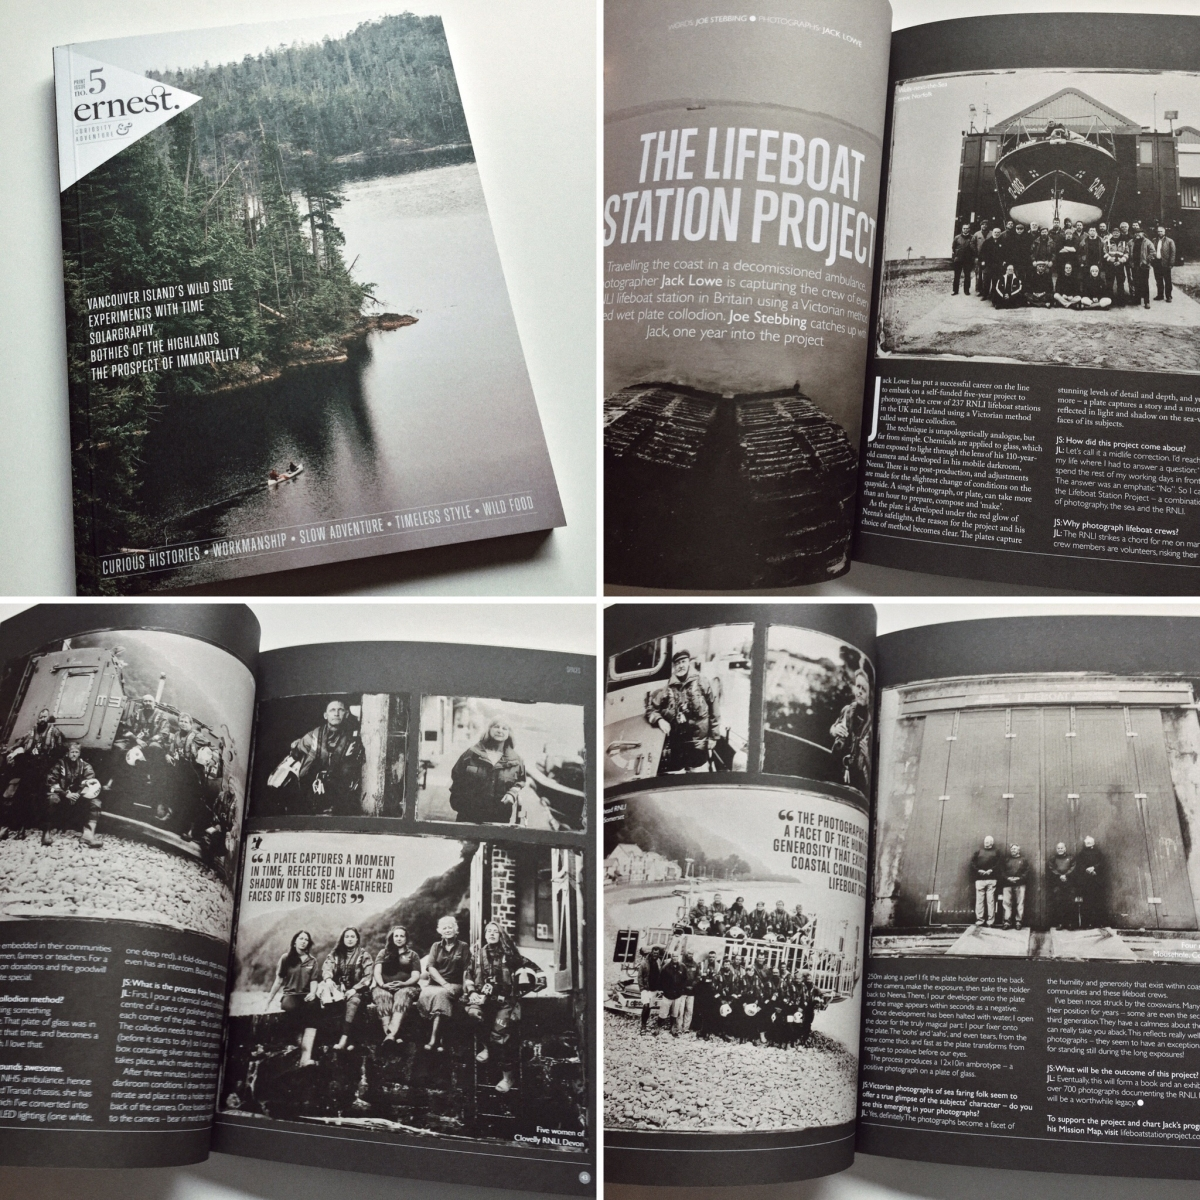 The Lifeboat Station Project by Jack Lowe in Ernest Journal